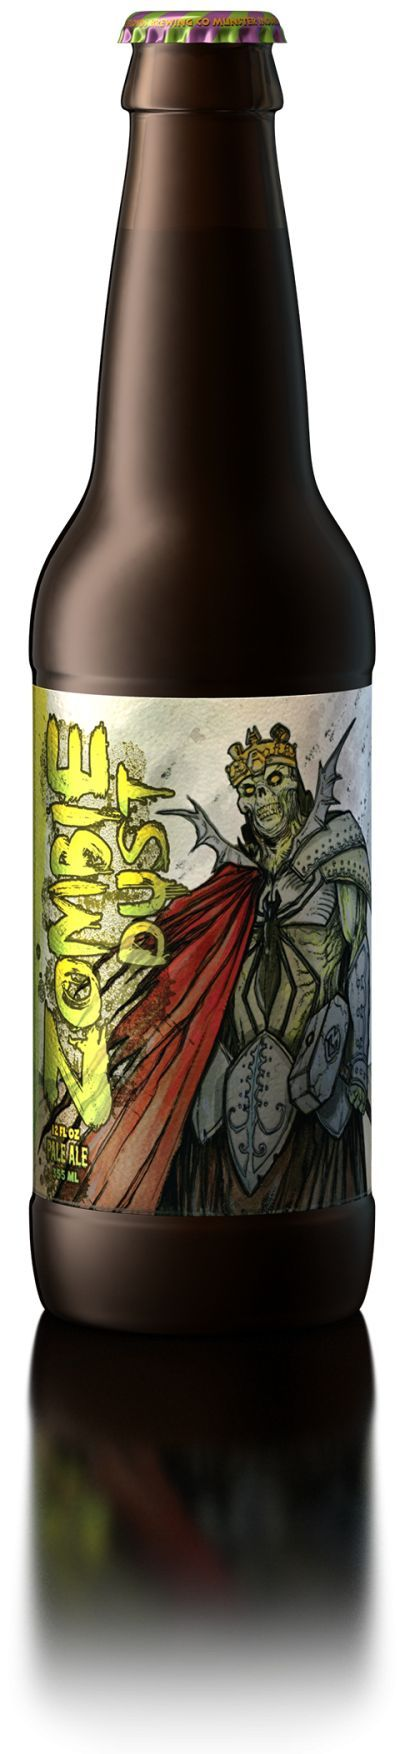 3 Floyds Brewing Co Zombie Dust This